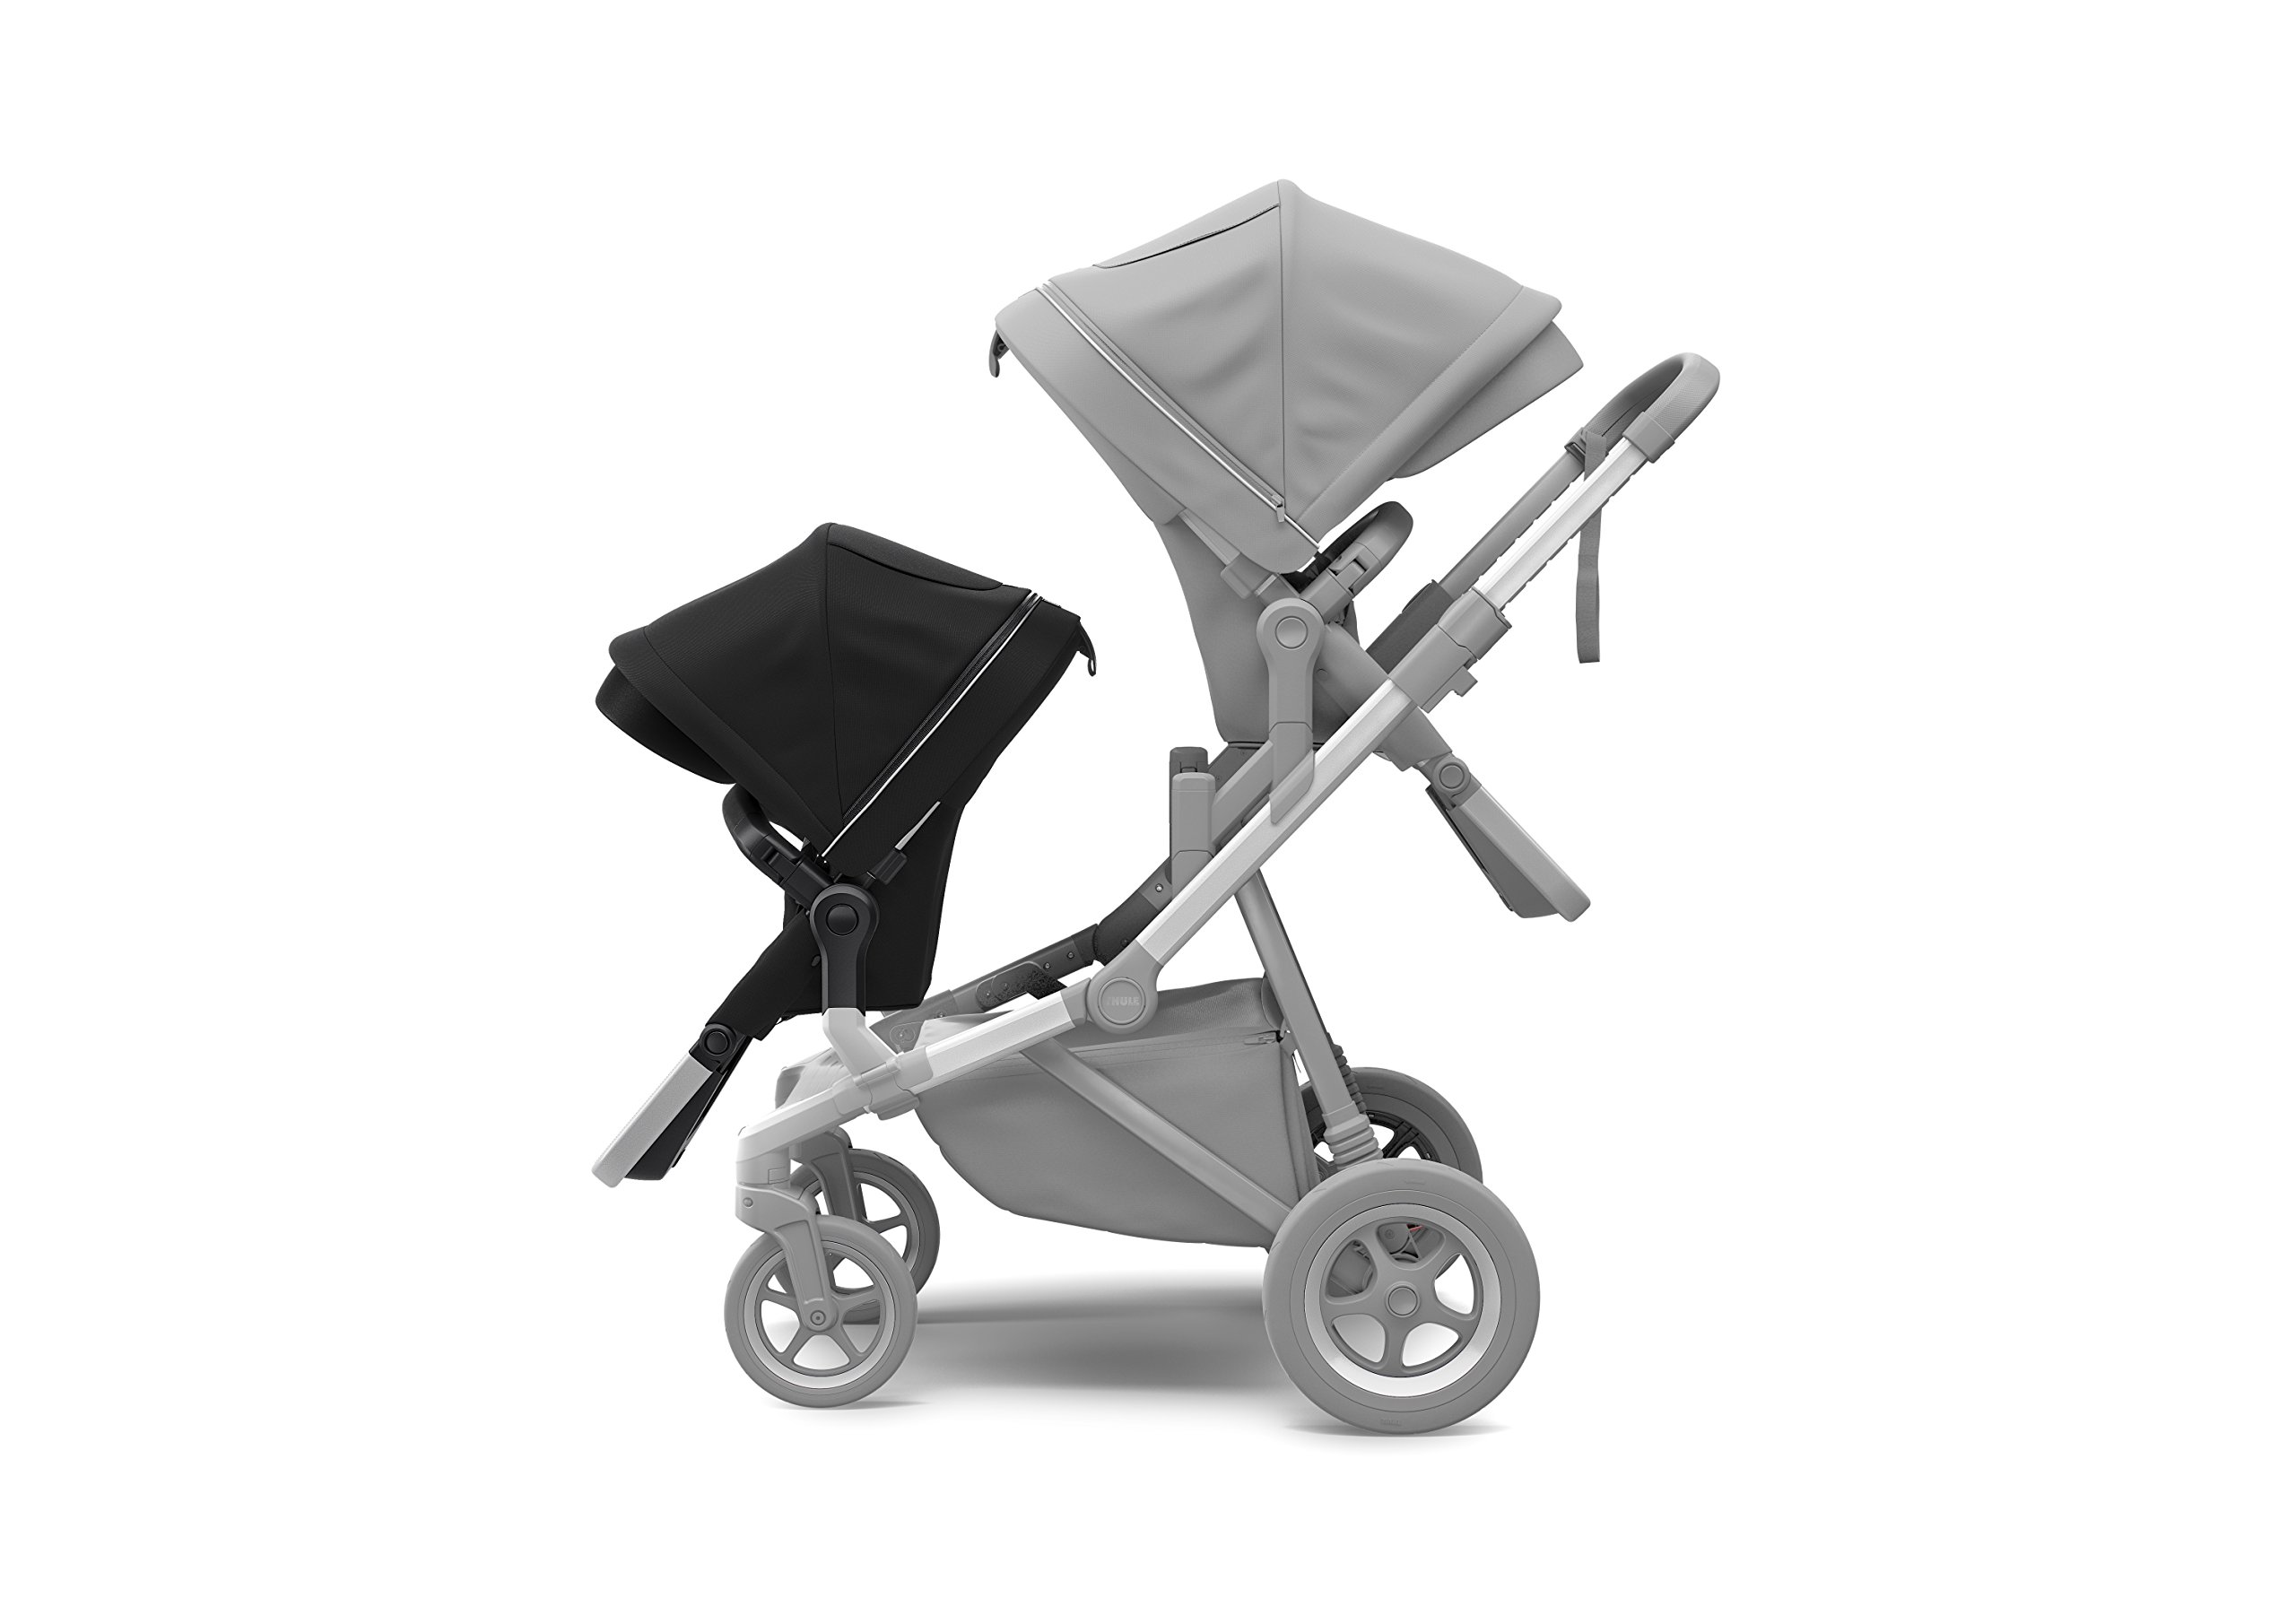 Thule Sleek Sibling Seat, Black Thule Ventilated canopy with peekaboo window and extendable sun visor gives your child a pleasant ride in any weather and provides UV protection (UPF 50+) Comfortable large seating area, with generous sitting height and foot well Reversible seat for parent- or forward-facing position 5